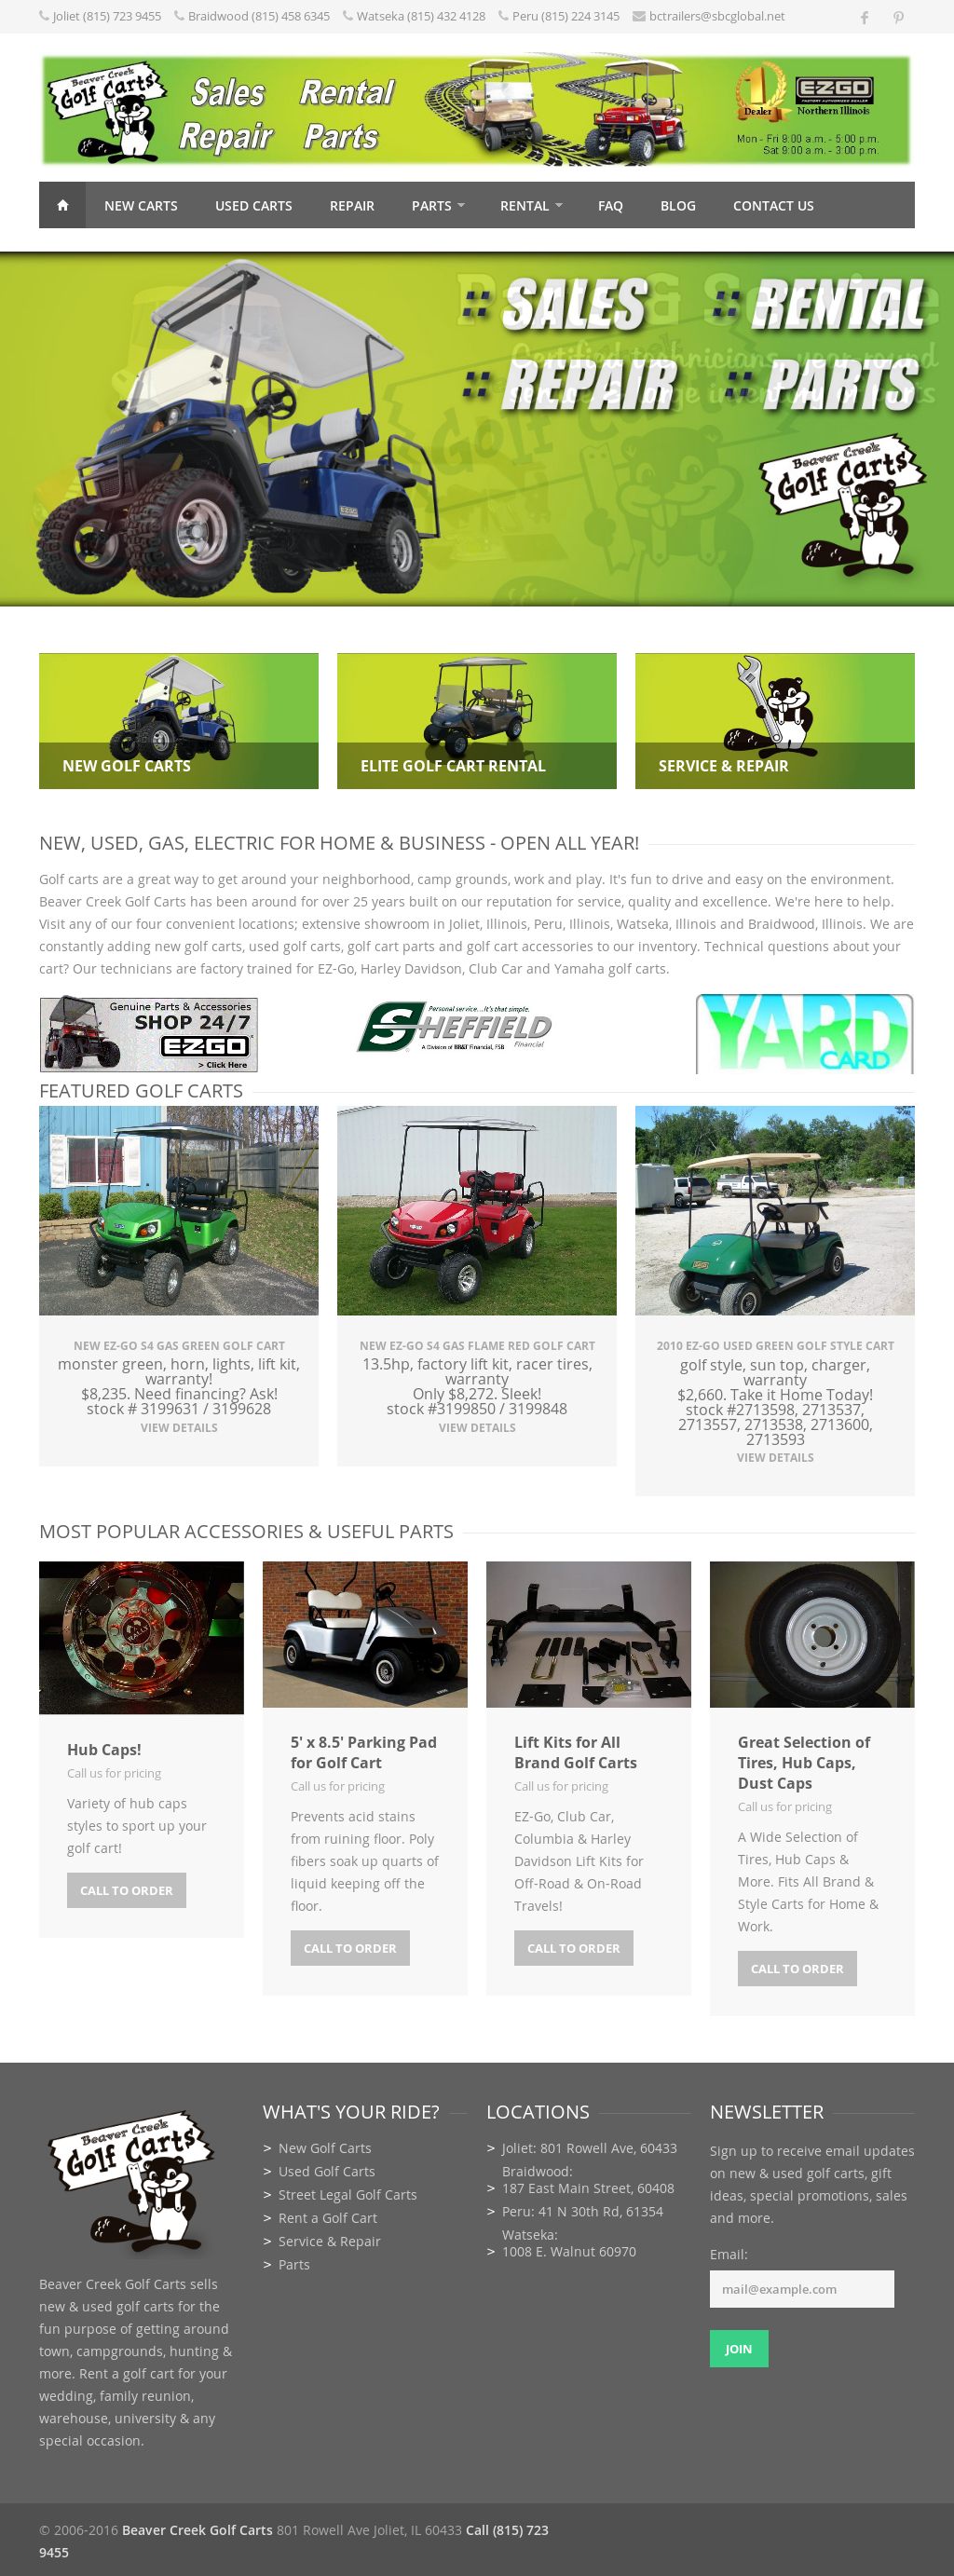 Beaver Golf Cart on cow golf cart, bears golf cart, bradley golf cart, hornet golf cart, pig golf cart, eagle golf cart, kodiak golf cart, ladybug golf cart, bobcat golf cart, pink flamingo golf cart, bandit golf cart, longhorn golf cart, denali golf cart, apache golf cart, mule golf cart,